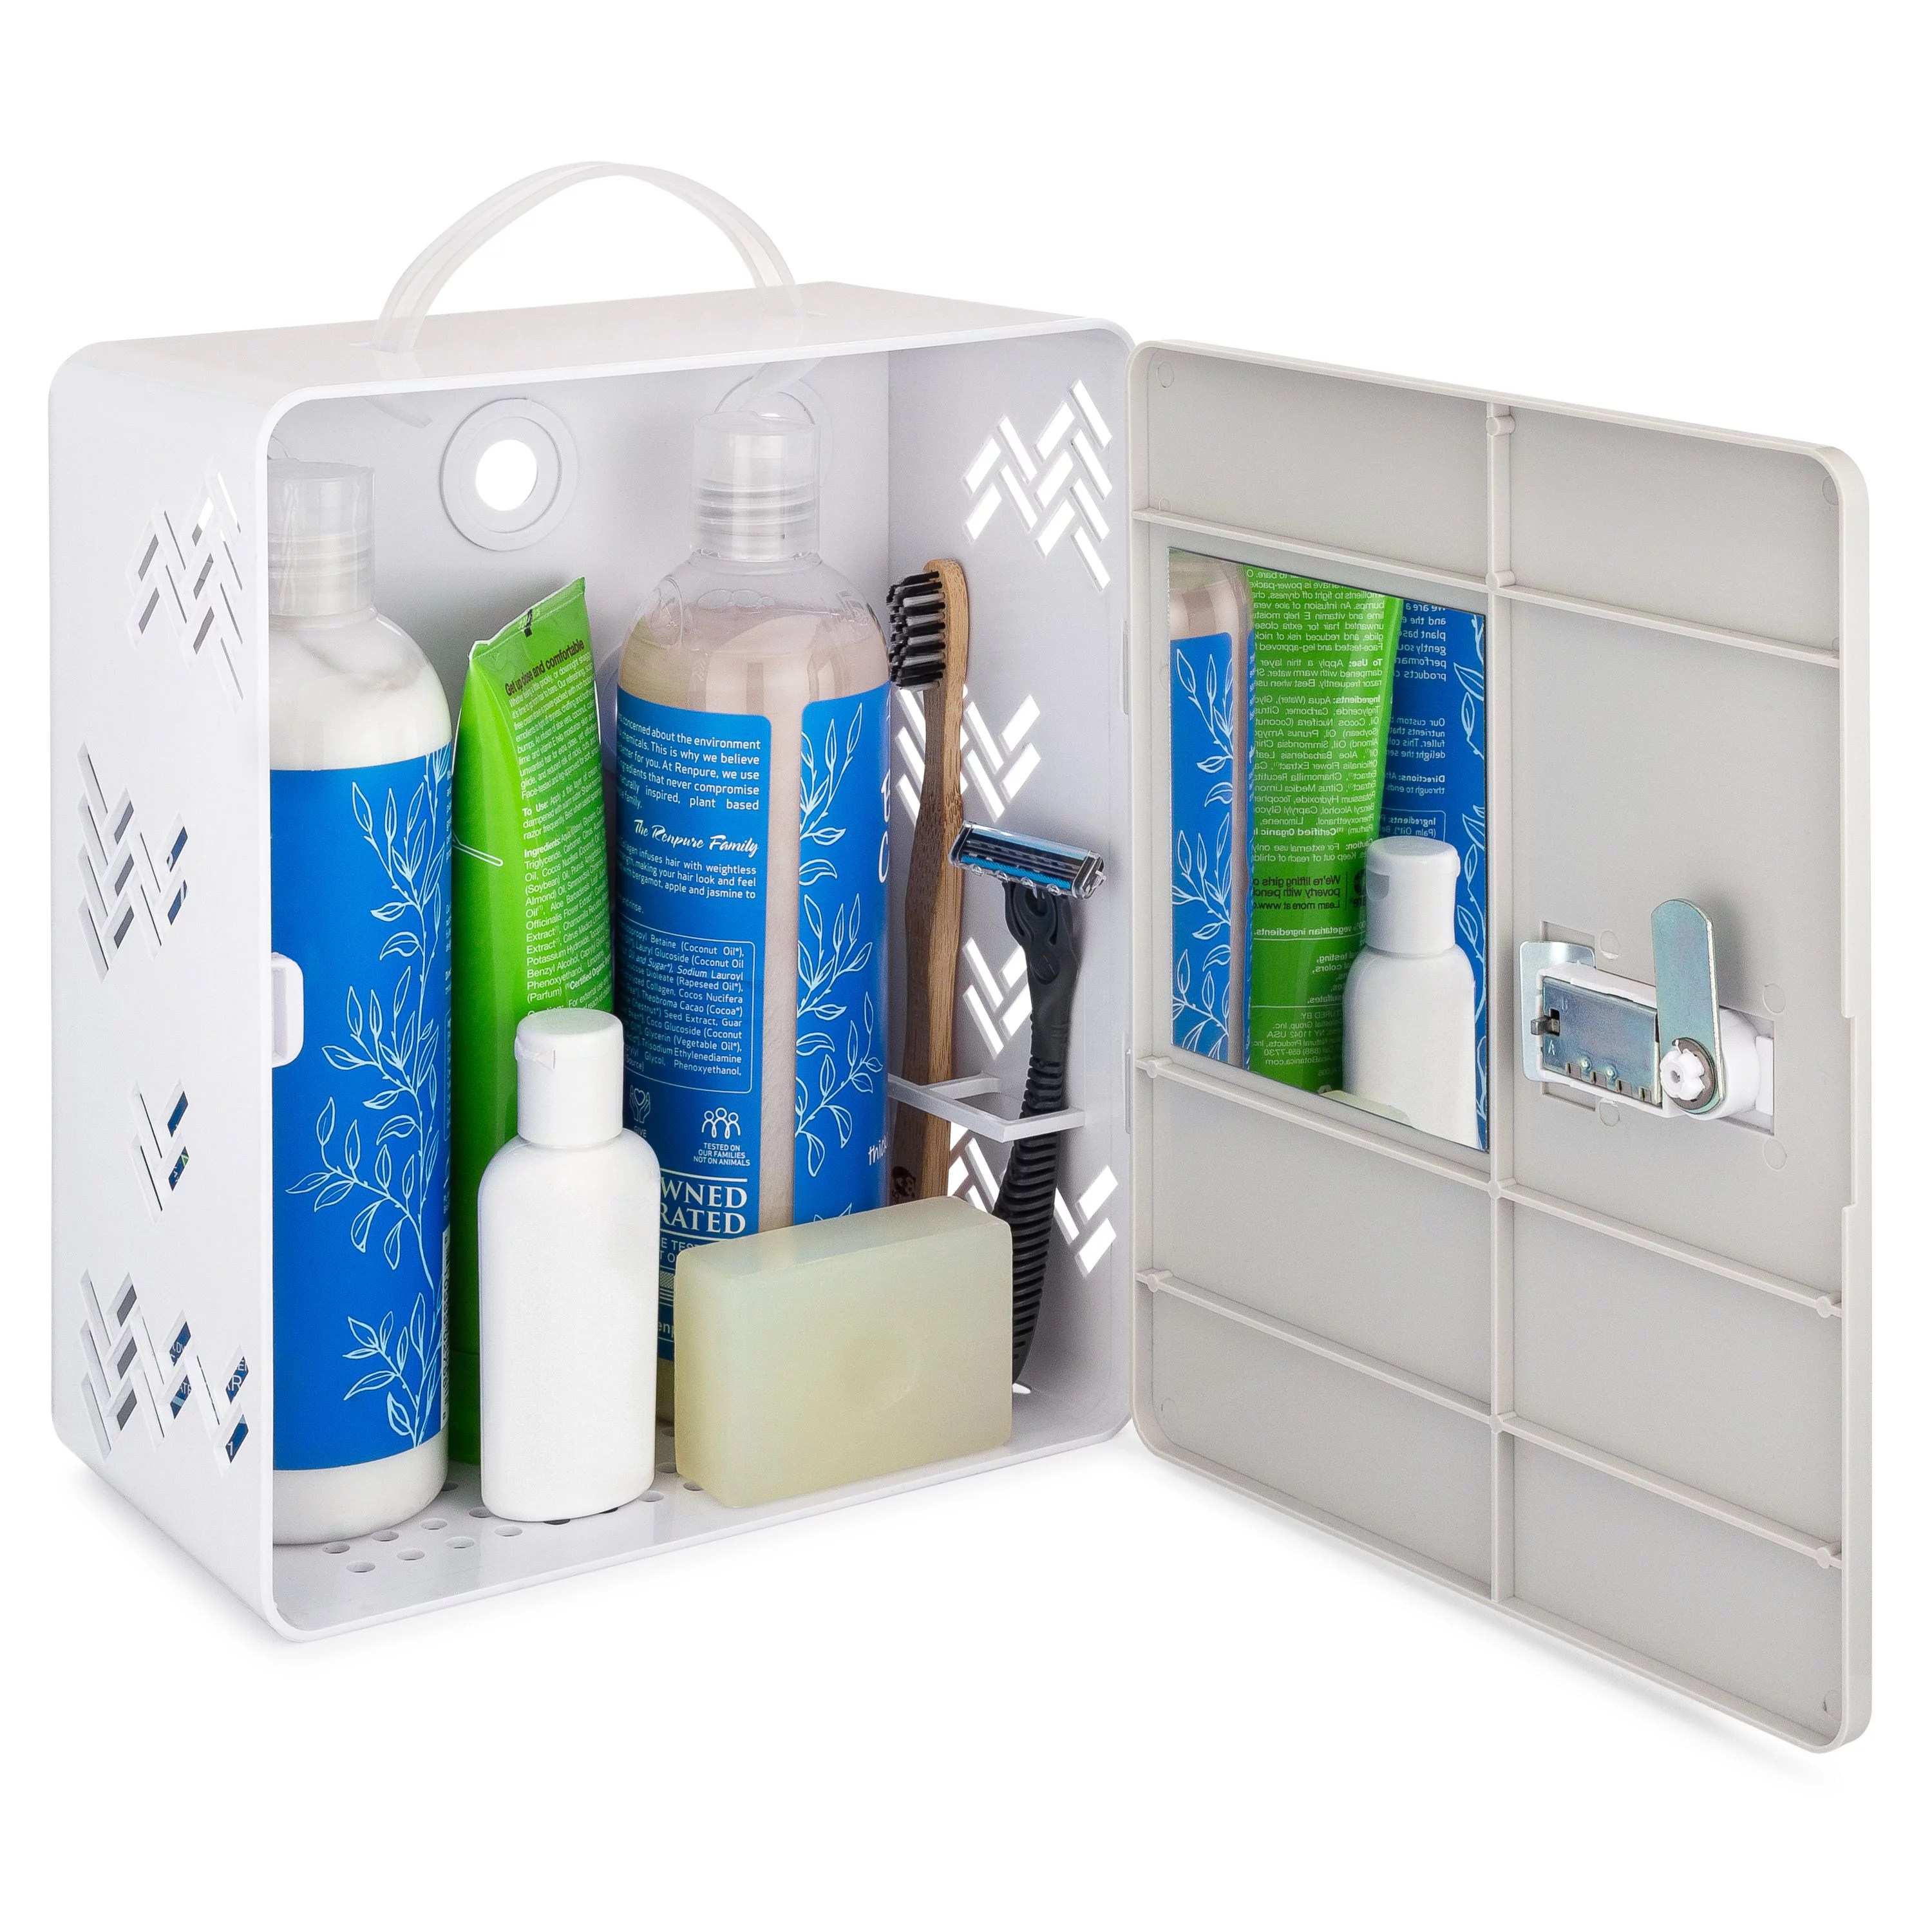 shower caddy locker shower caddy tote with suction cups lock mirror best for co living and sharing a bathroom in dorms and college with